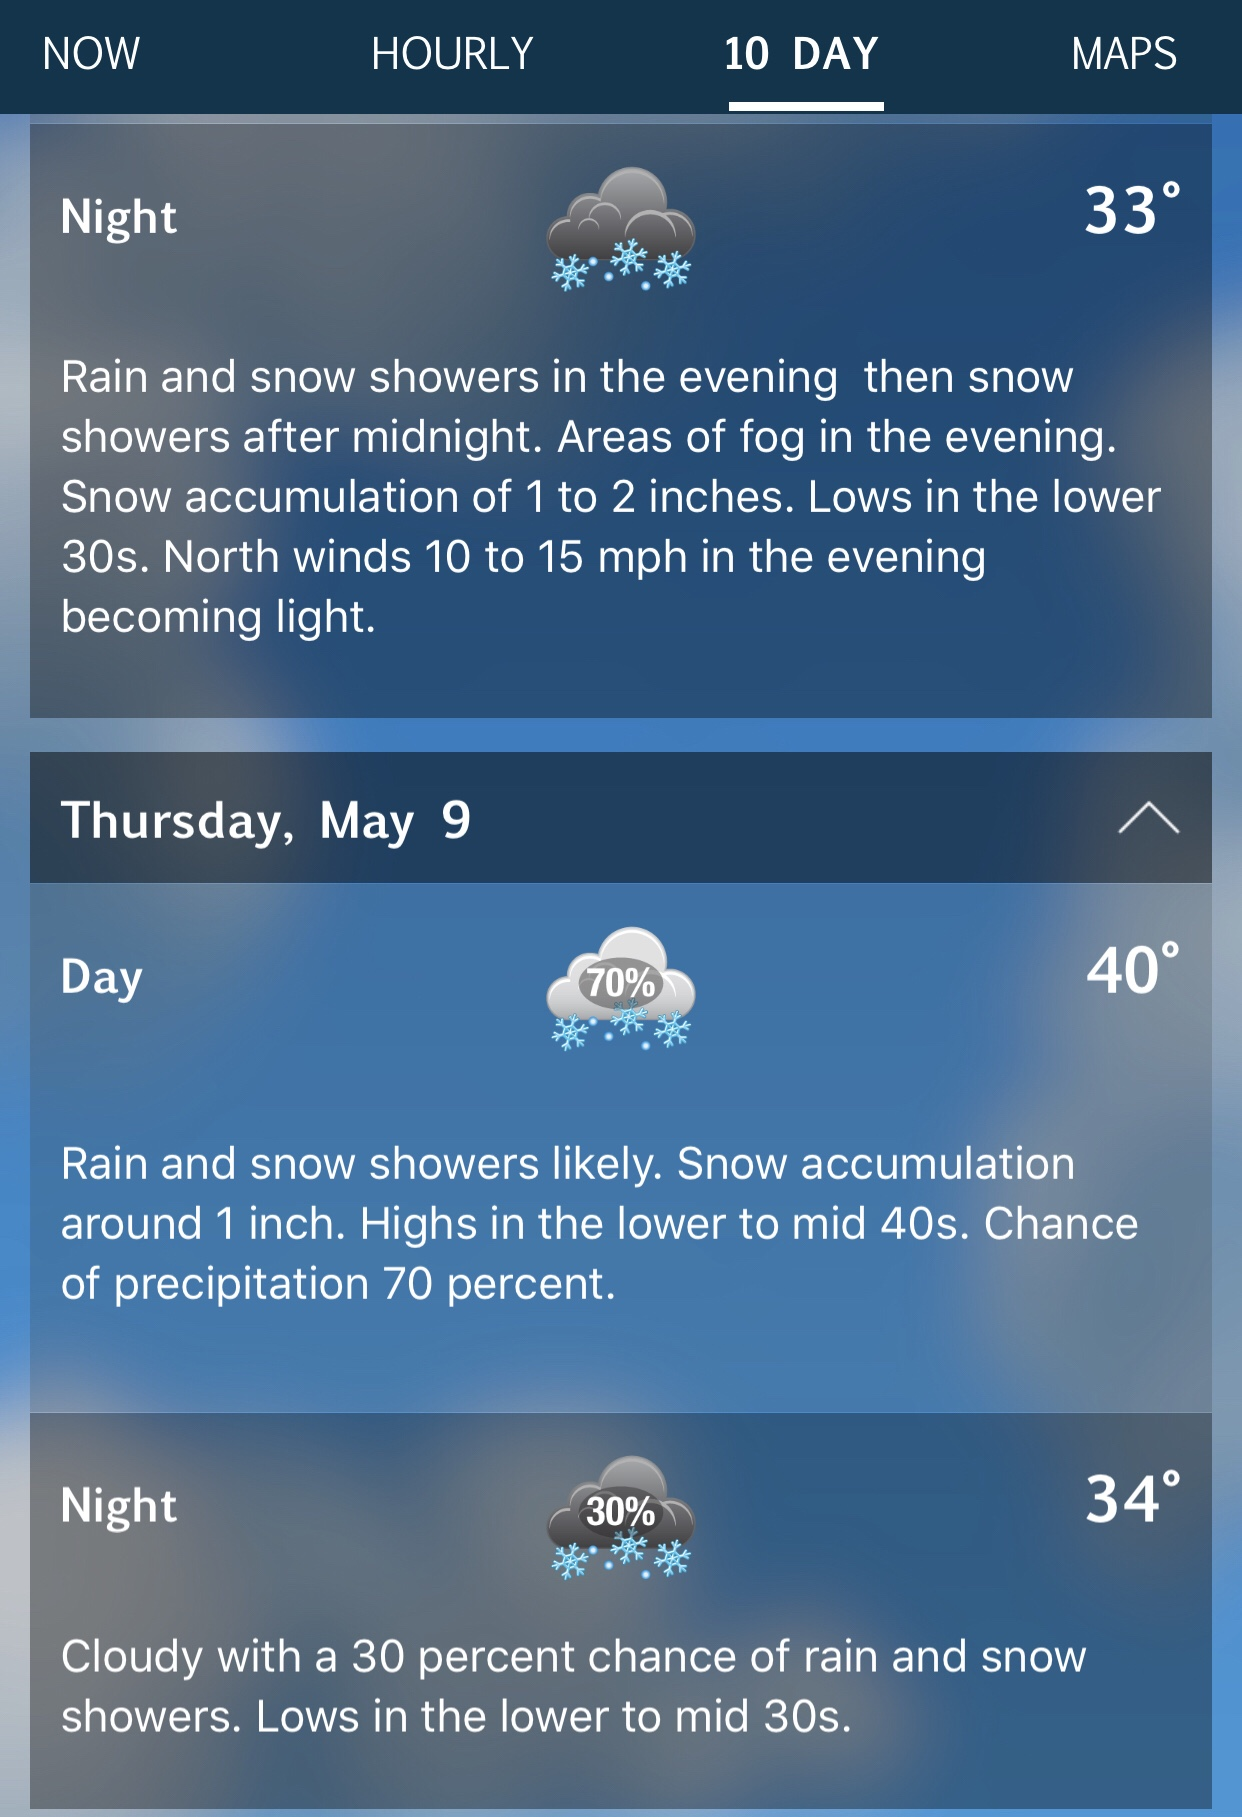 The weather forecast for this evening and tomorrow. Snow it is.